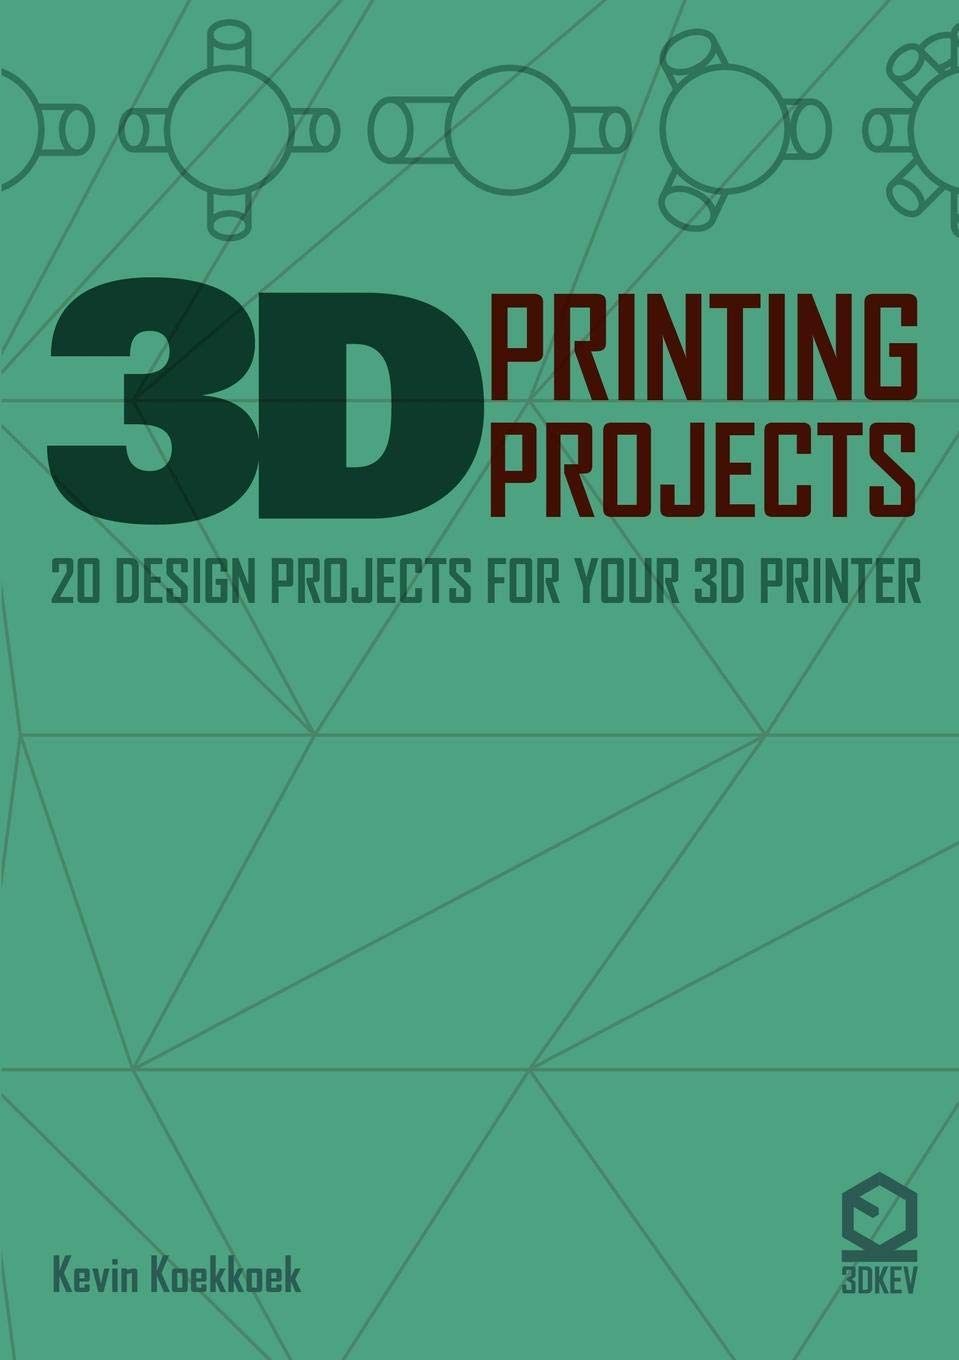 3D Printing Projects. 20 Design Projects for Your 3D Printer